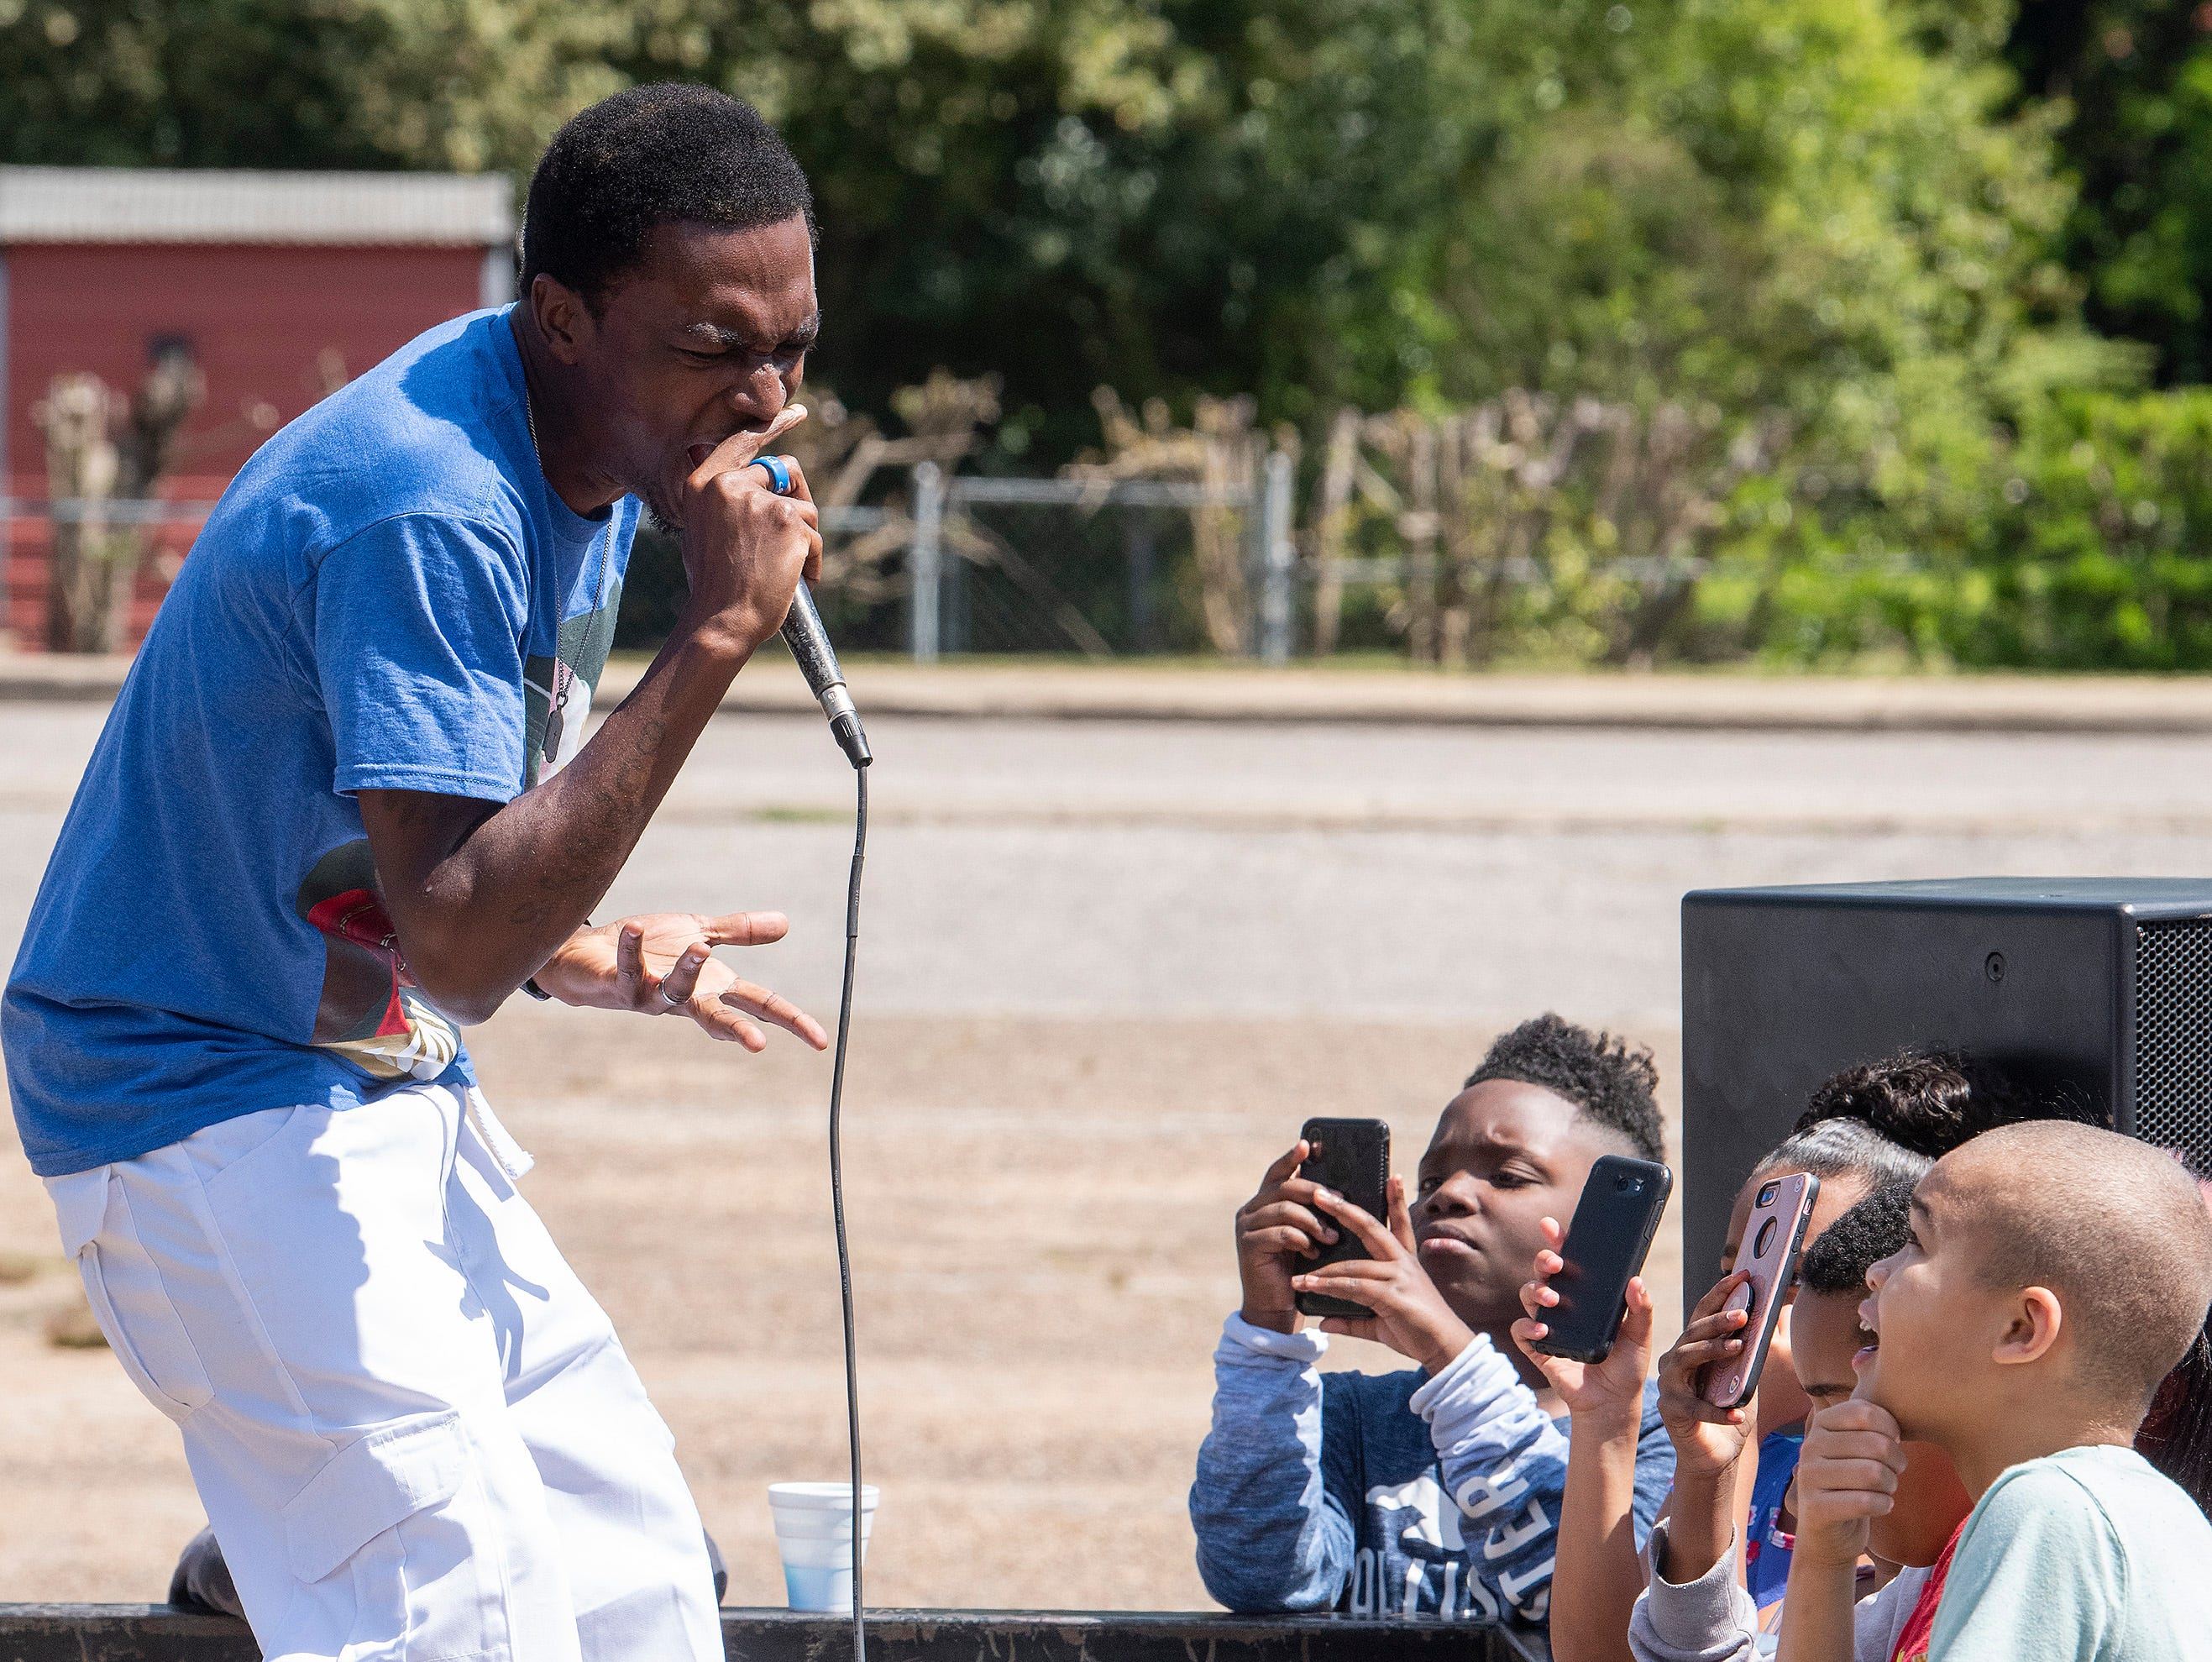 Christian rapper King Allico performs as Flatline Church hosts a block party for the Chisholm neighborhood in Montgomery, Ala., on Saturday March 23, 2019.